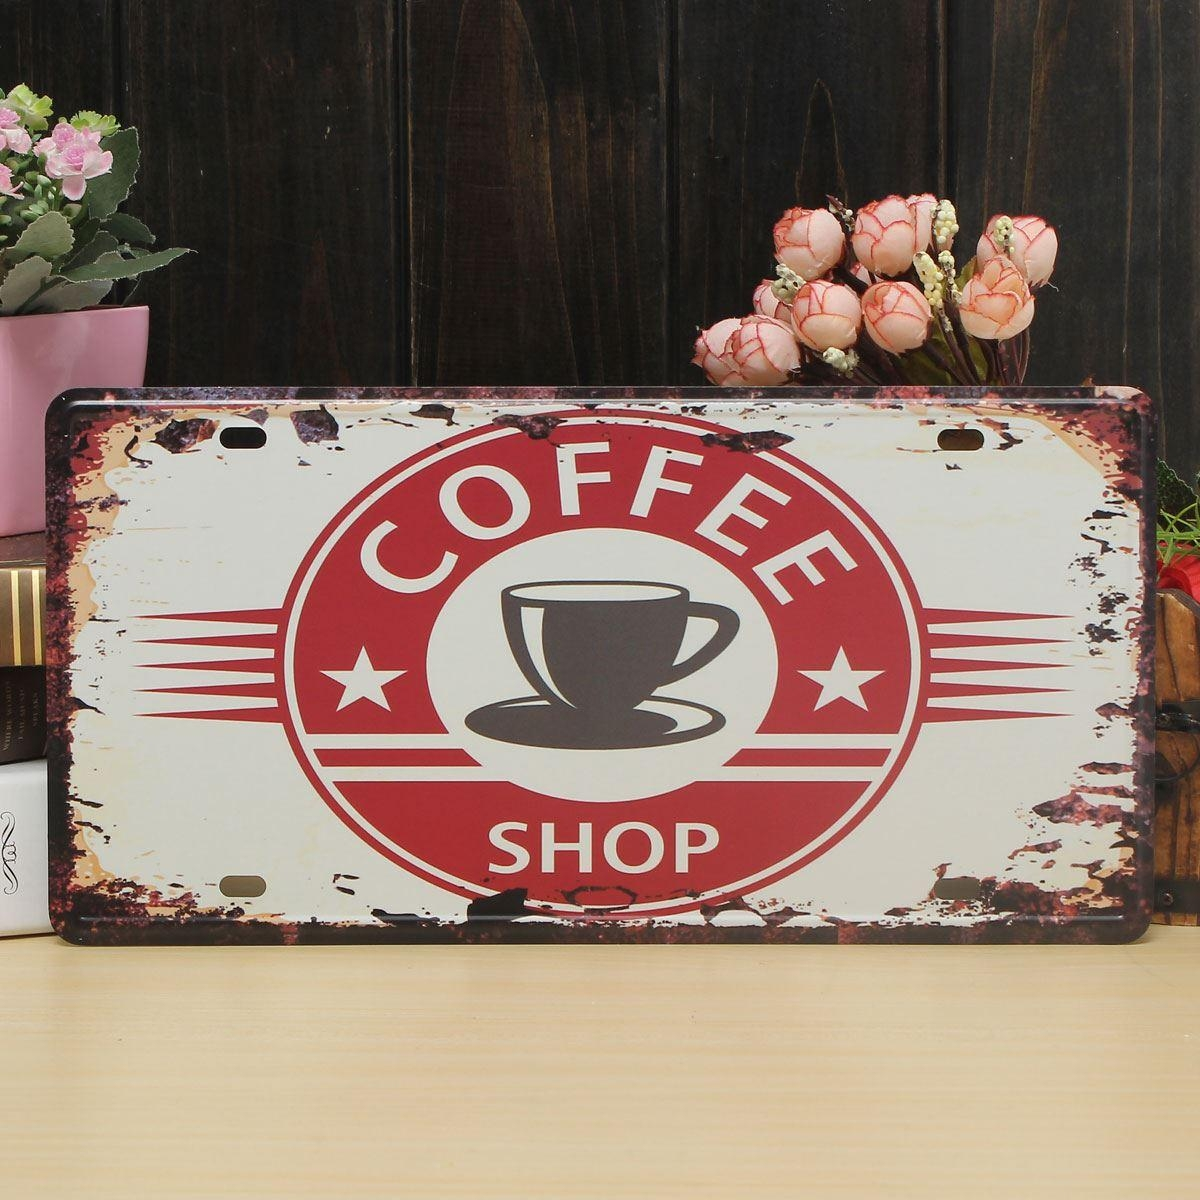 Coffee Theme Vintage Metal Sign The Fresh Brewed Coffee Wall Inside Metal Wall Art Coffee Theme (View 17 of 20)